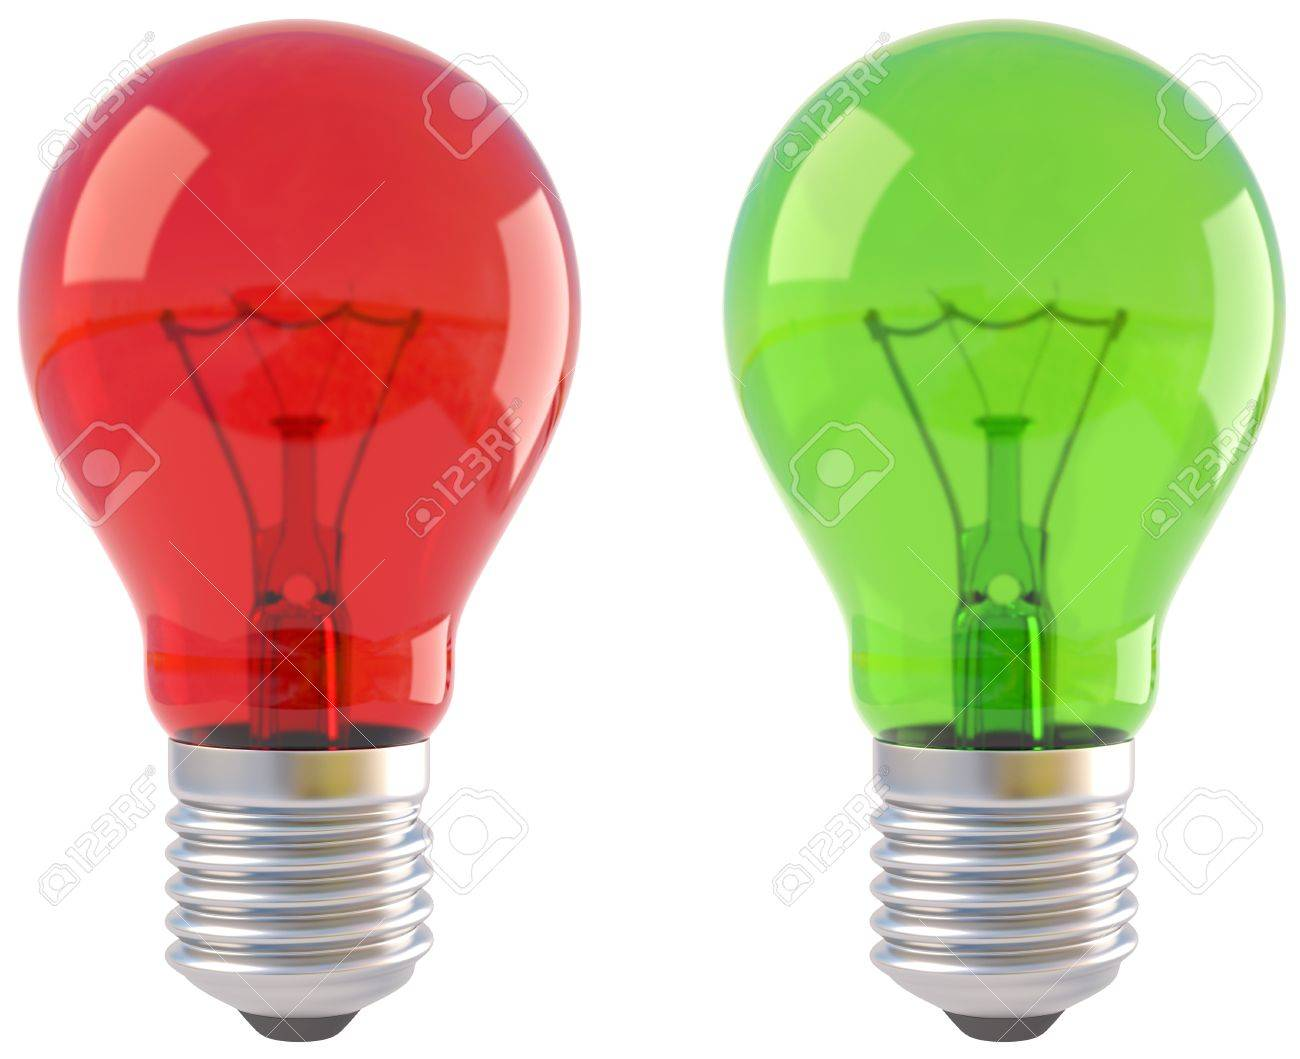 dark free led on image royalty glowing green a bulb economical vector light